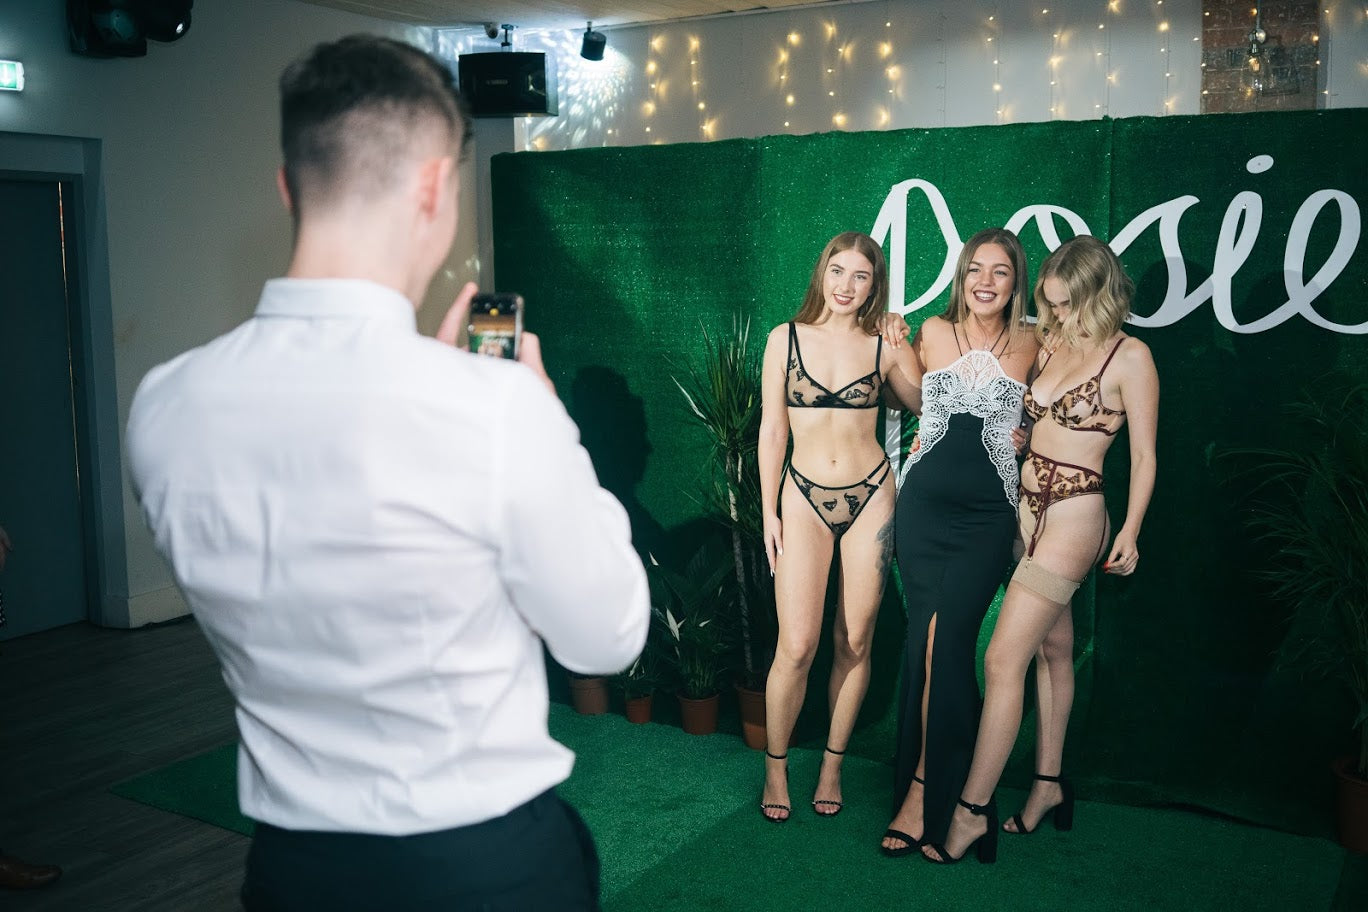 Guests taking a picture with models